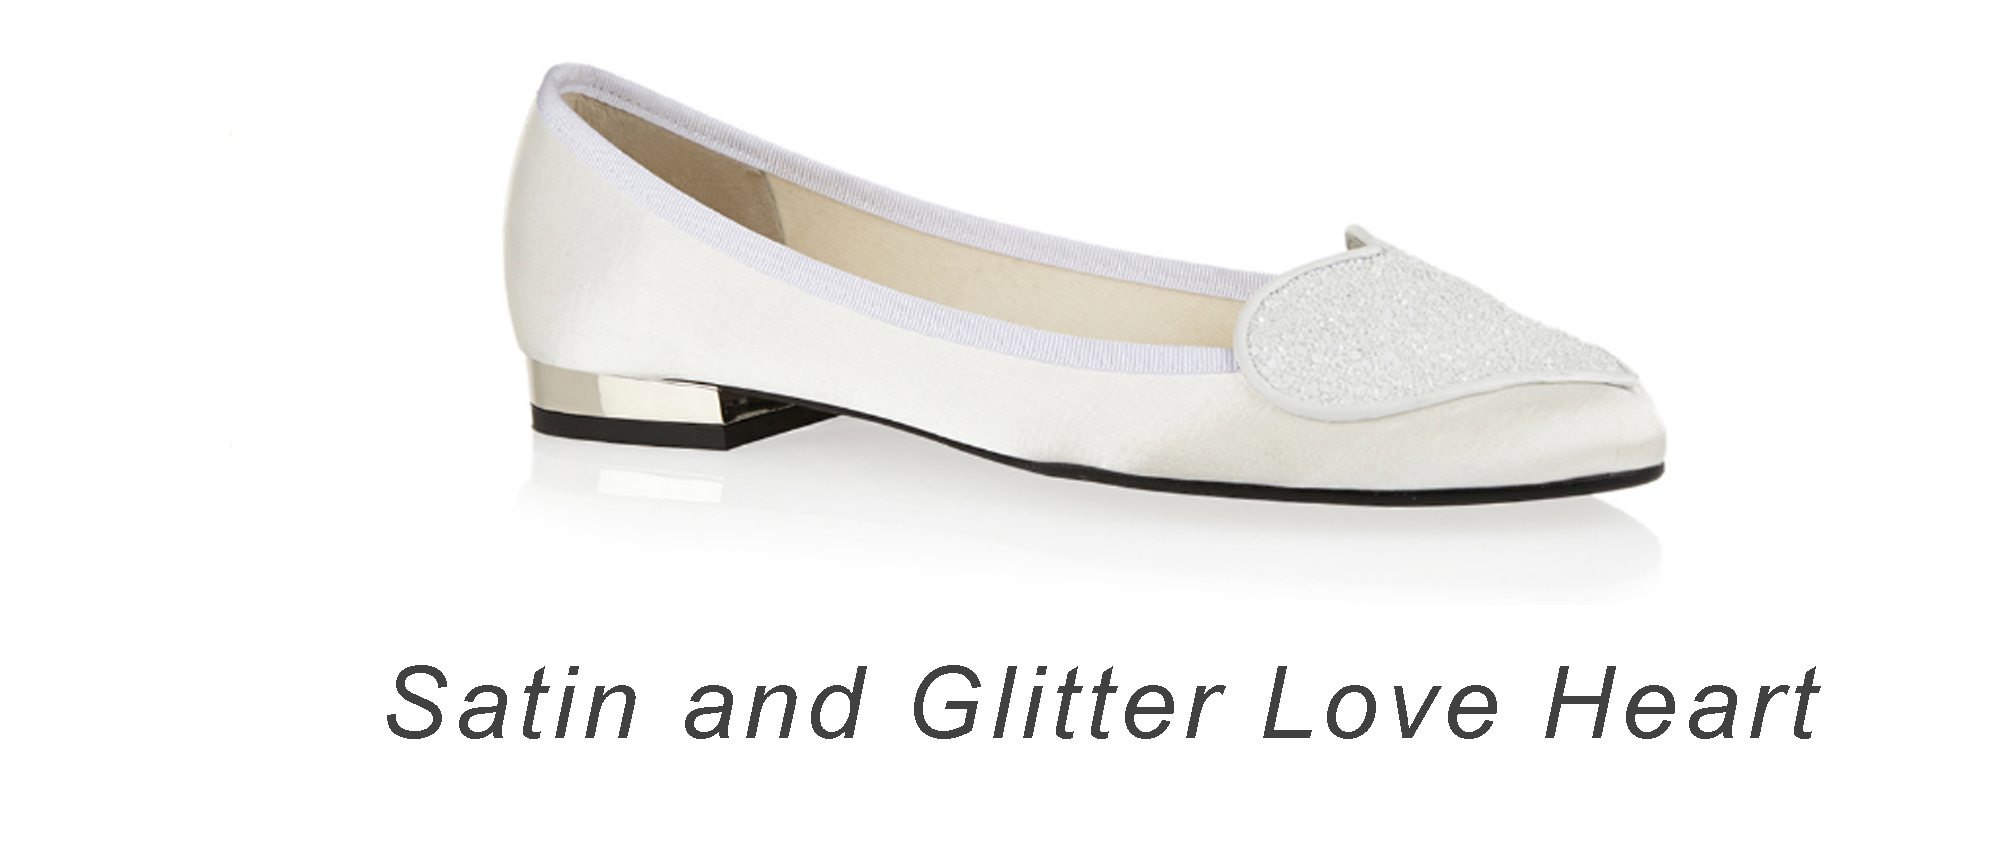 Satin and Glitter Love Heart flats.